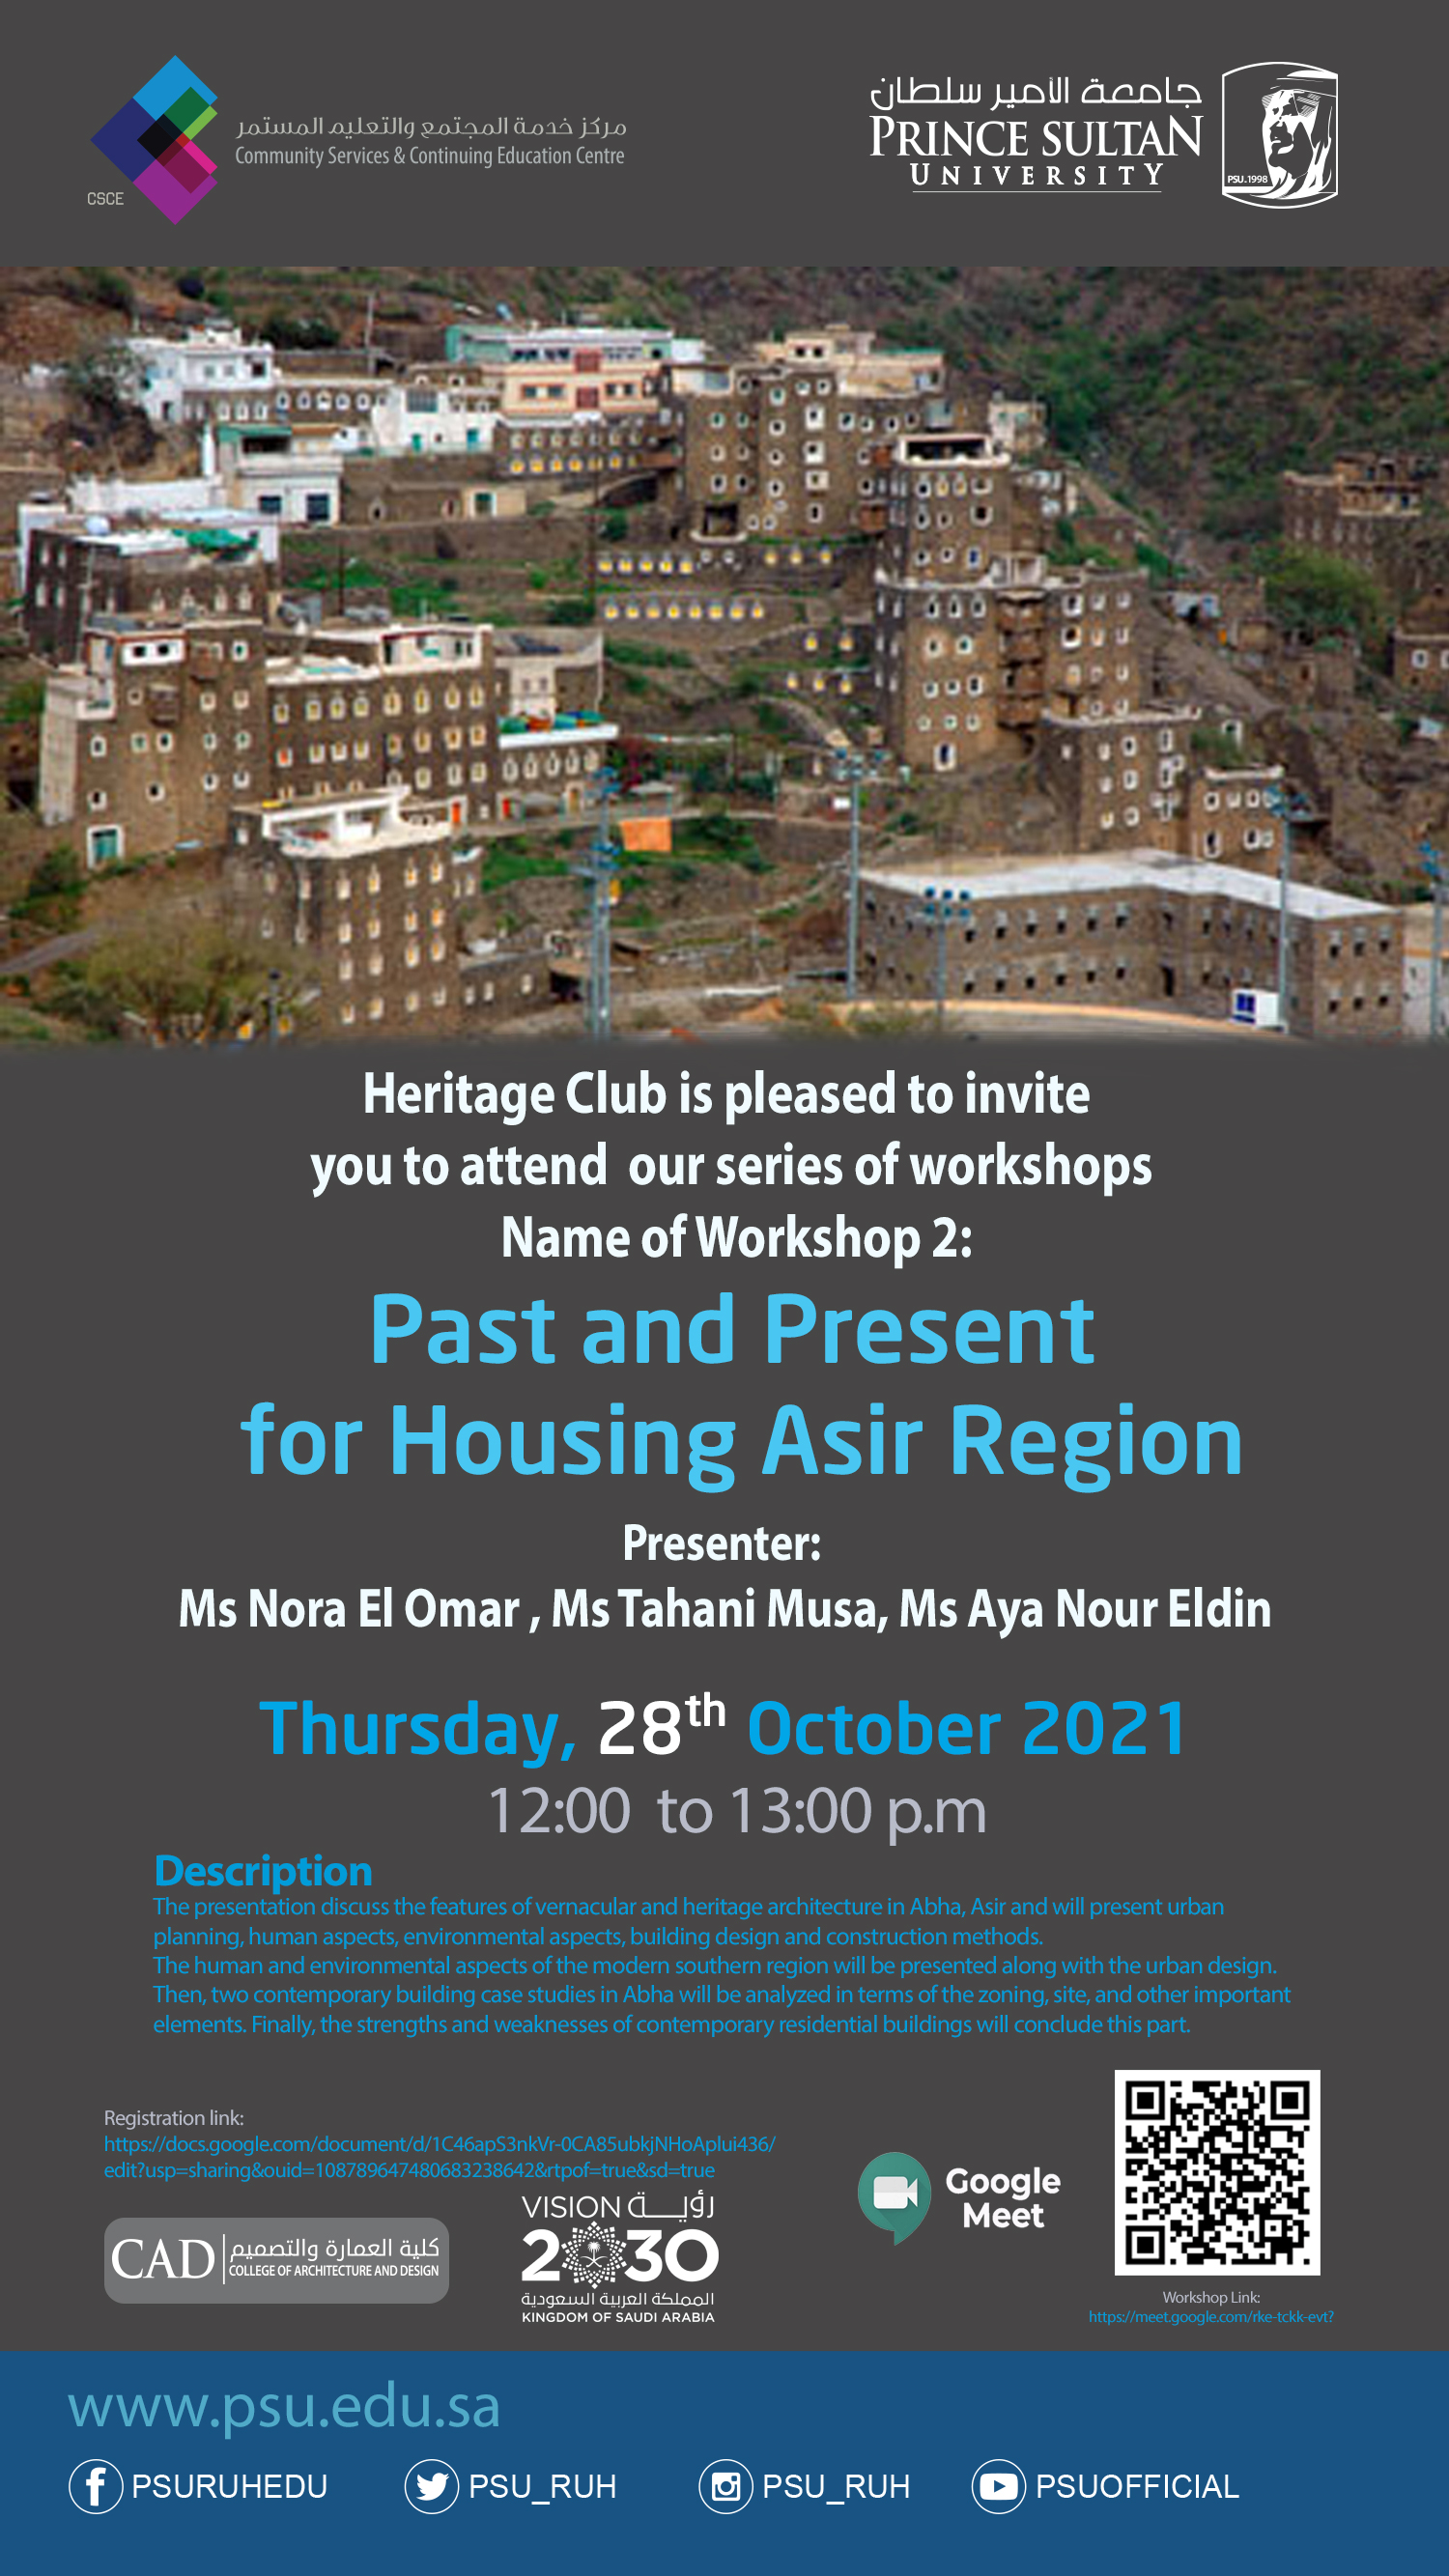 Past and Present for Housing Asir Region